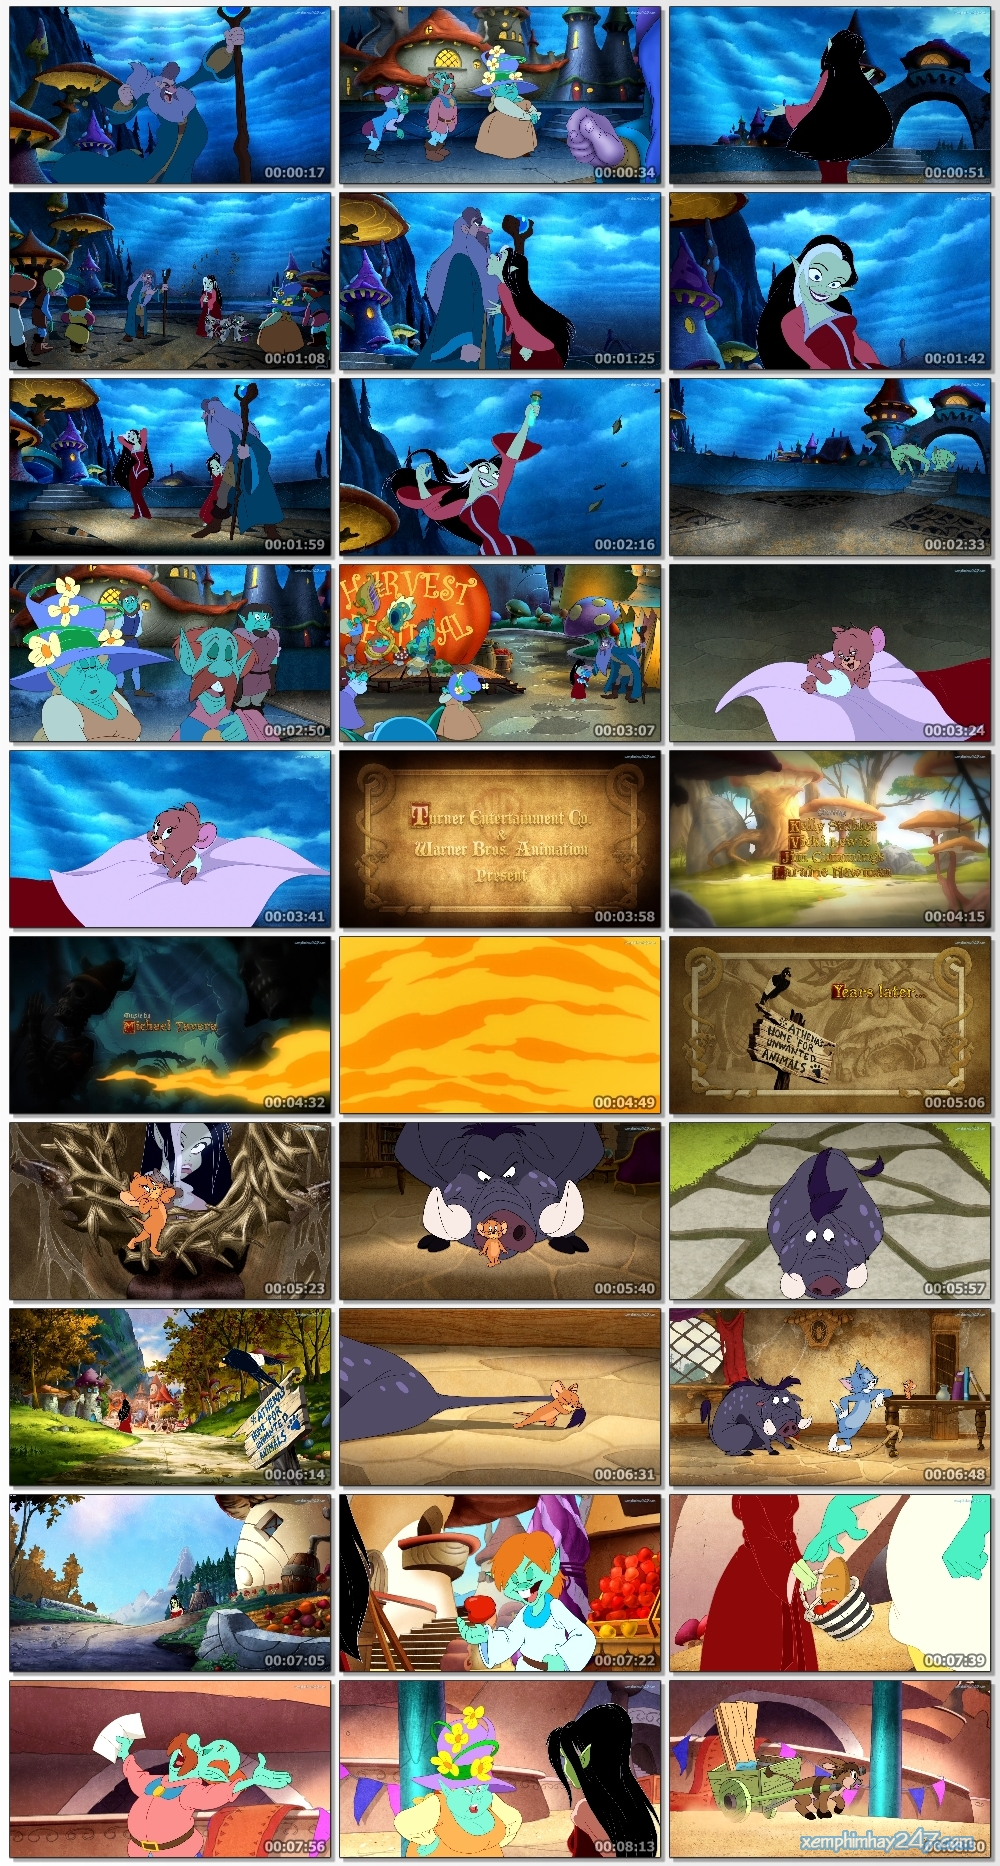 http://xemphimhay247.com - Xem phim hay 247 - Tom And Jerry: Chú Rồng Mất Tích (2014) - Tom And Jerry: The Lost Dragon (2014)